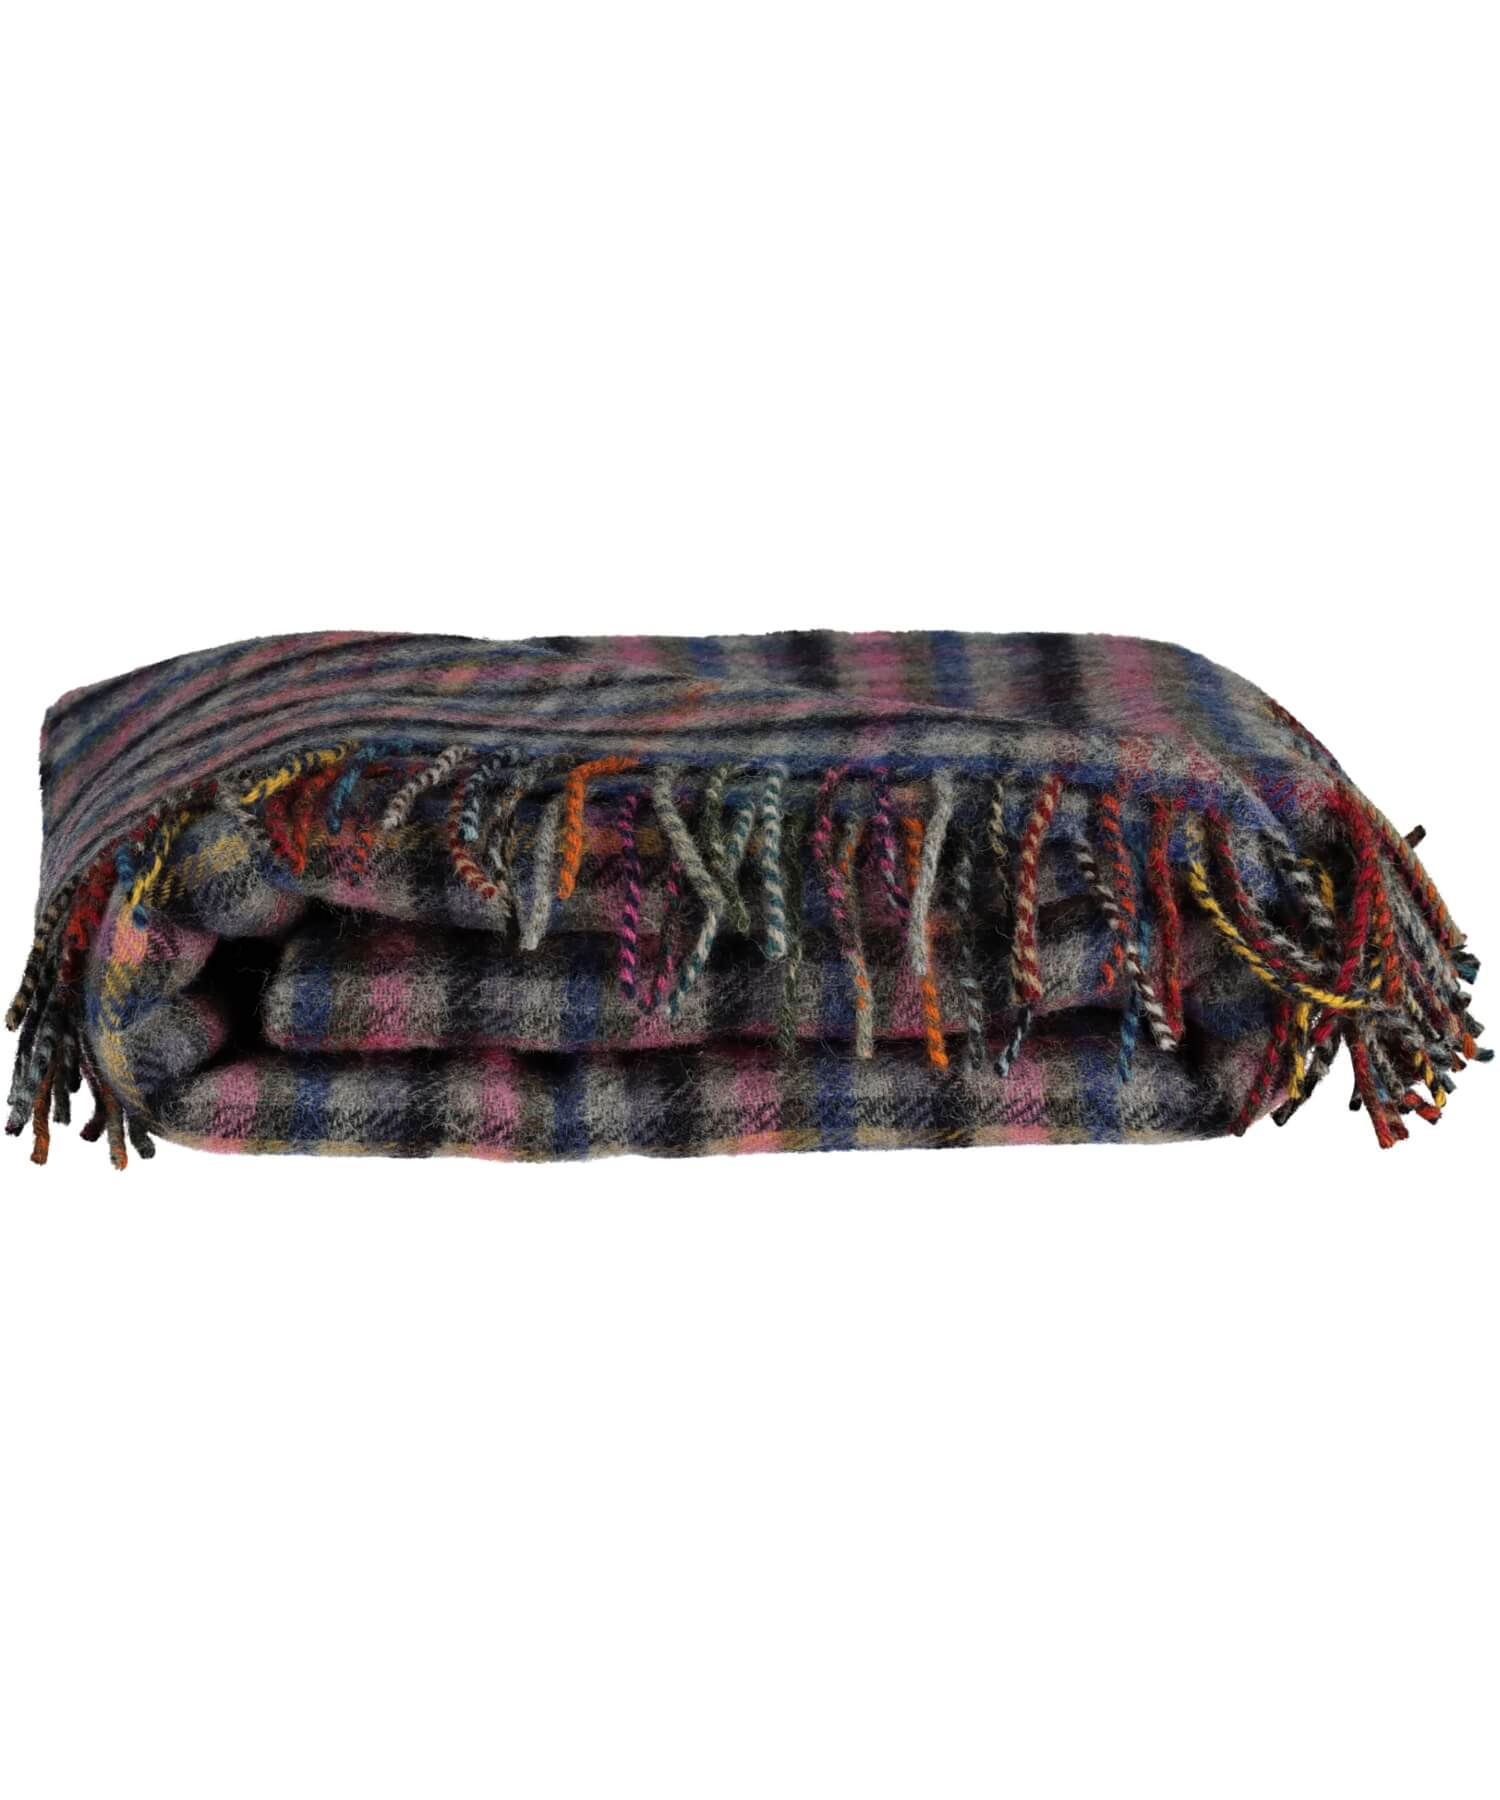 Home Wool Throw - Bluebell - [McNutts] - Throws & Cushions - Irish Gifts